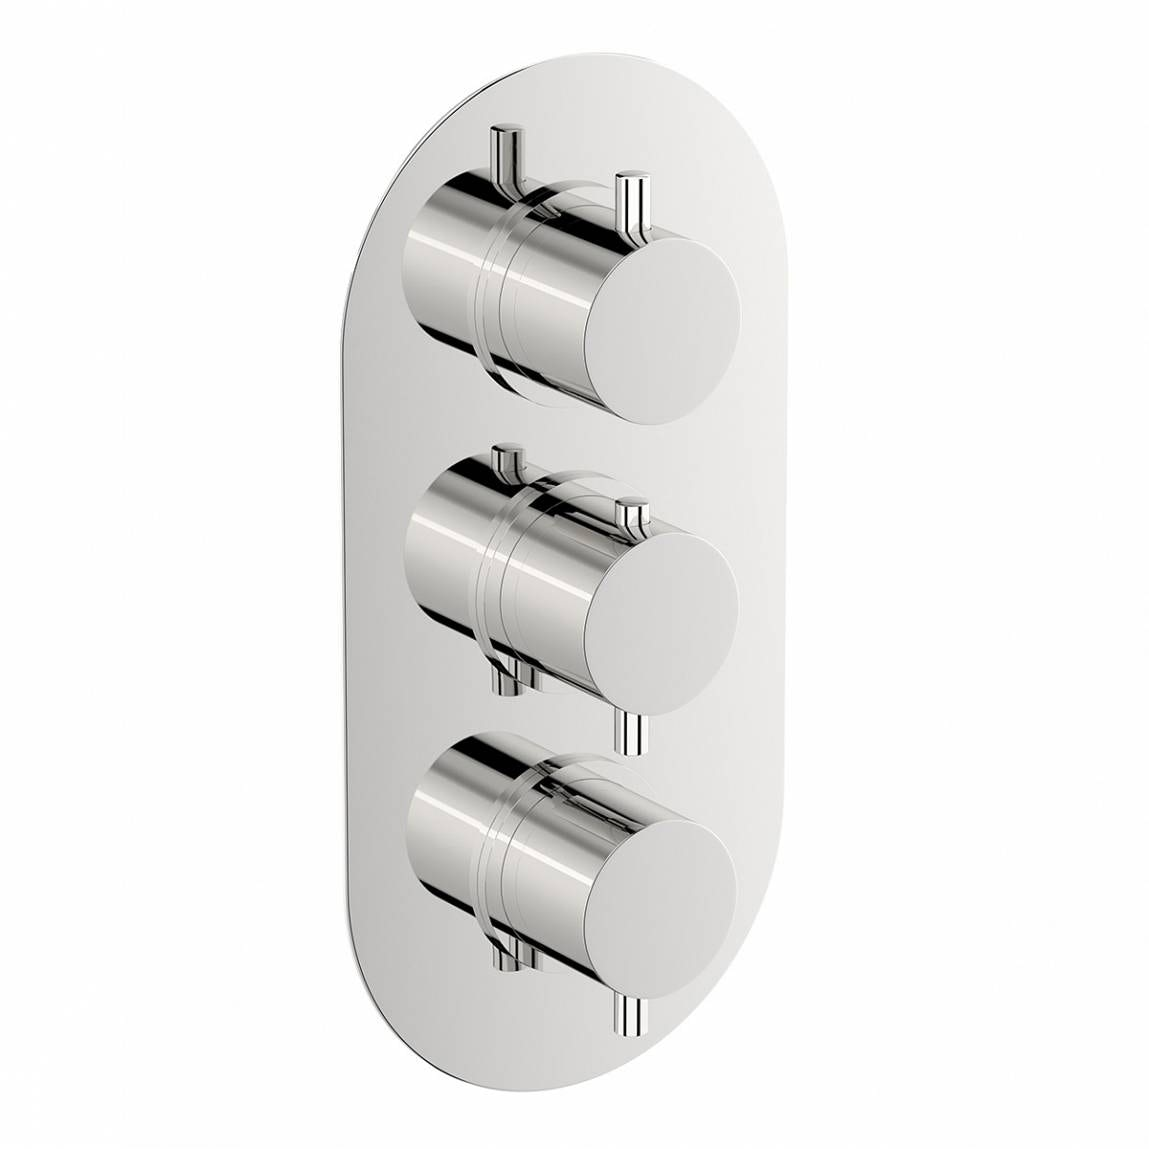 Mode Matrix oval triple thermostatic shower valve